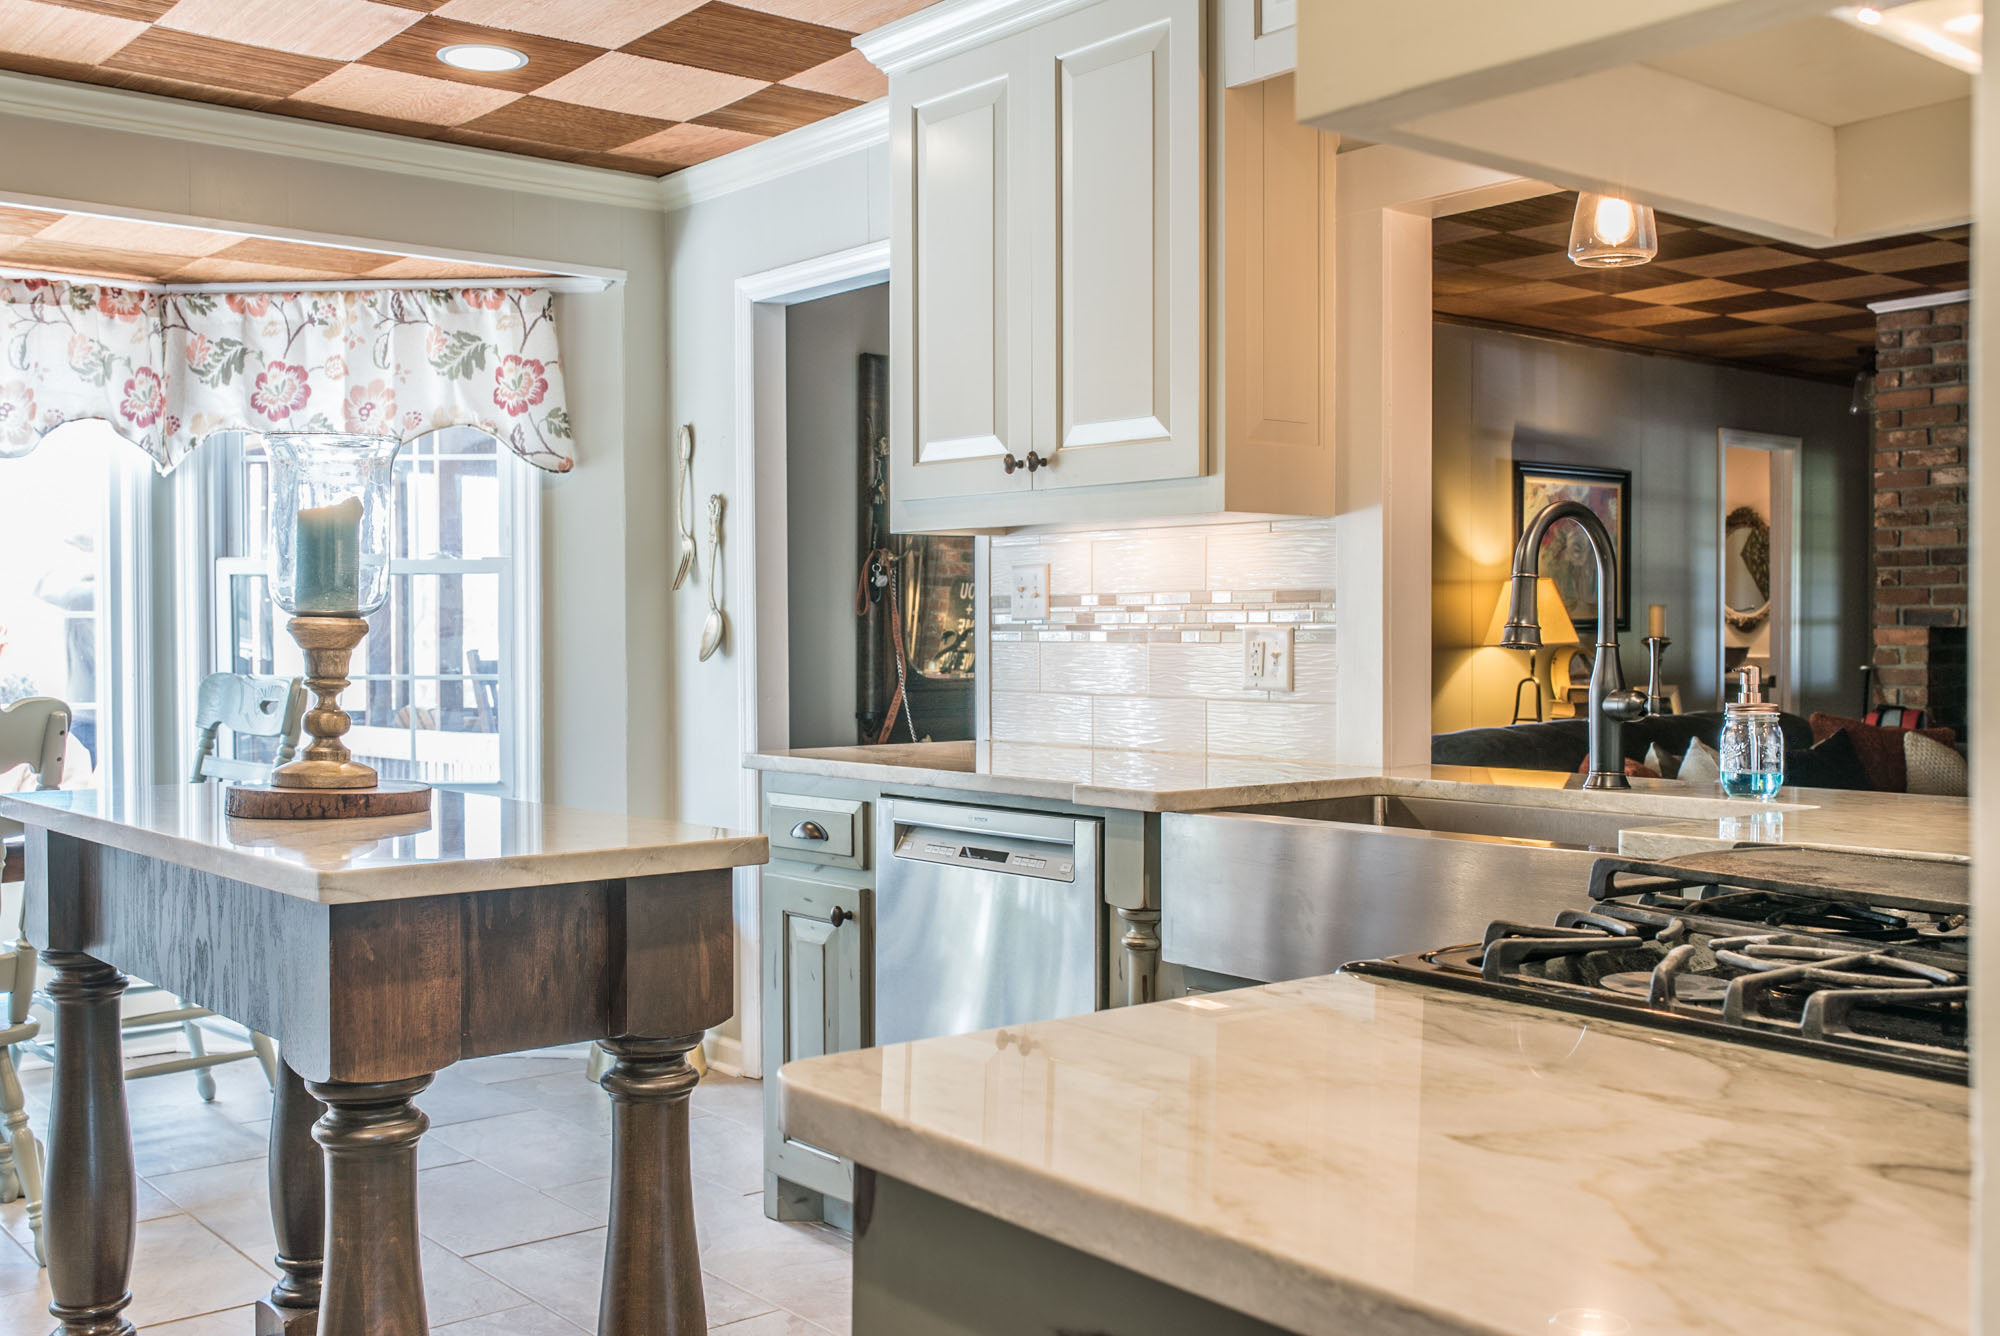 Sea Pearl Quartzite countertops matched with white stacked tile backsplash and stainless appliances